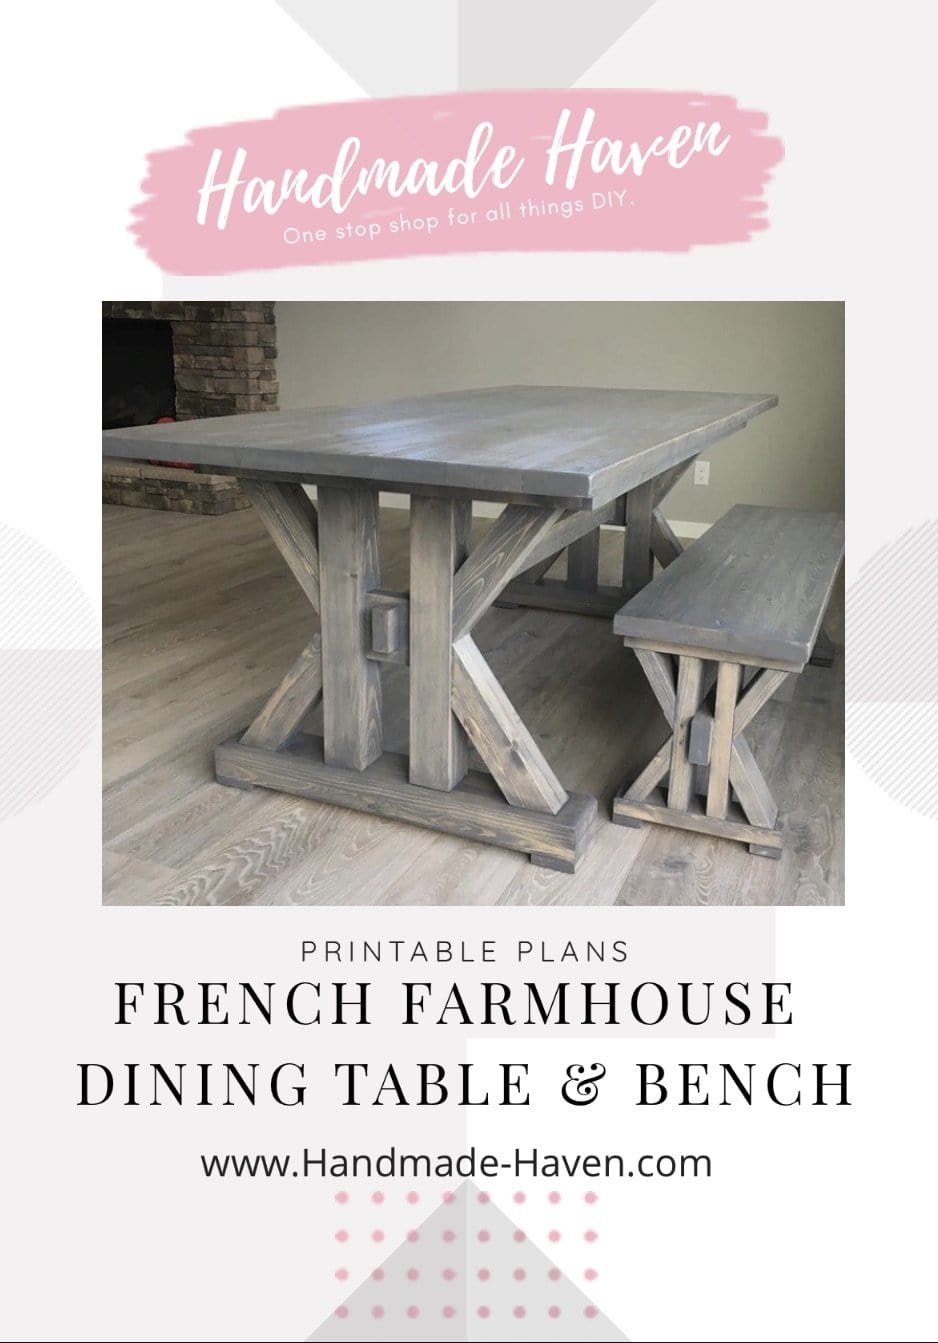 French Farmhouse Dining Table - Printable Plans